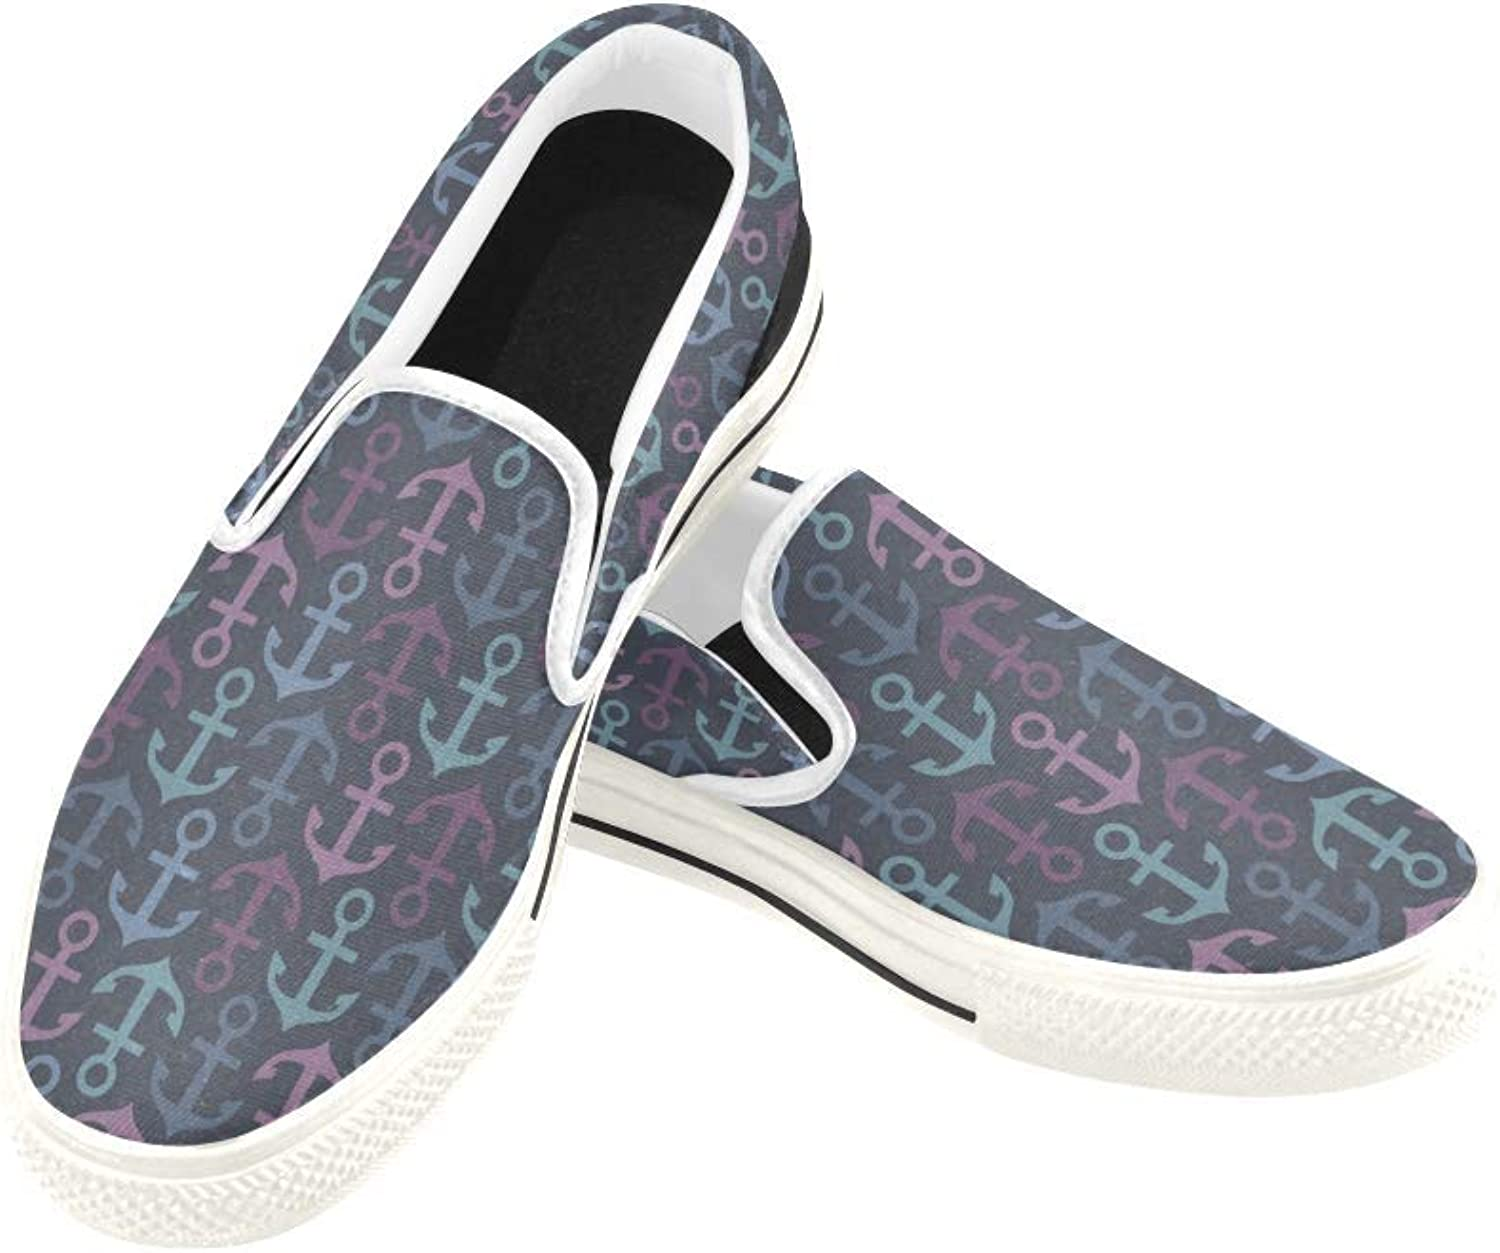 InterestPrint Womens Slip On Canvas shoes Loafers Evil Eyes Girls Classic Casual Sneakers Flats